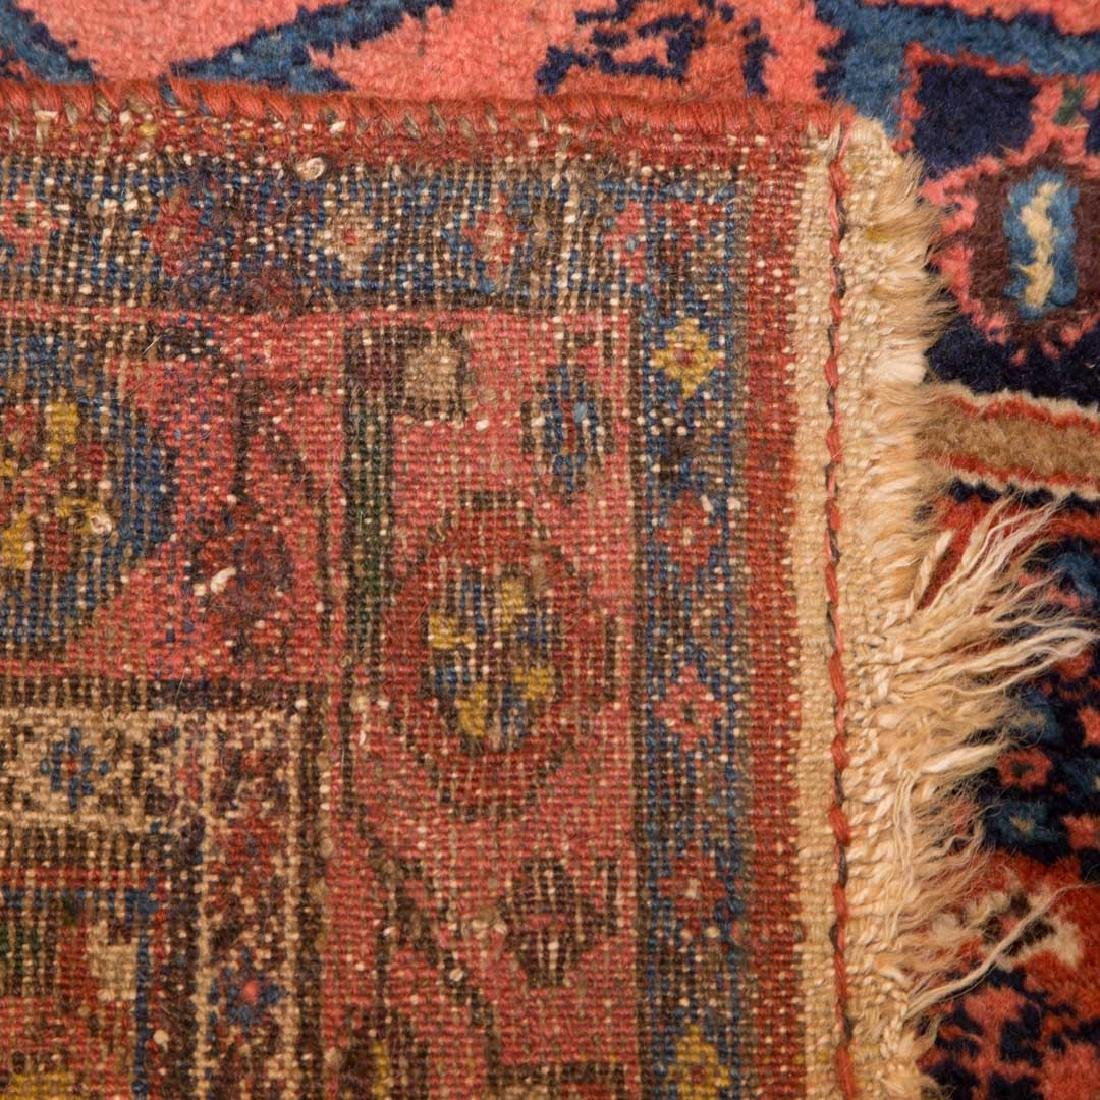 Antique Hamadan rug, approx. 3.7 x 6.4 - 3